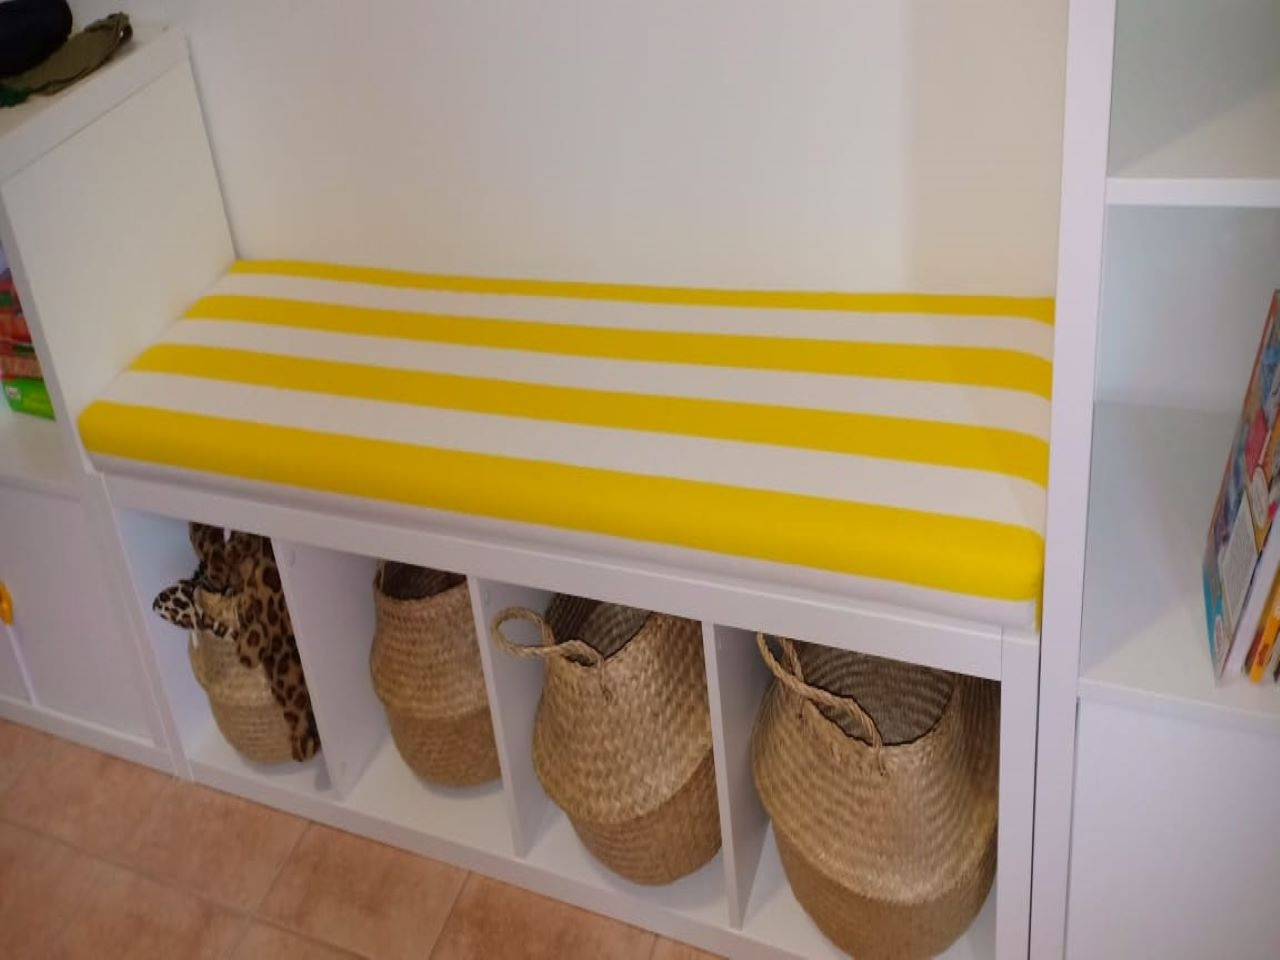 Cushion for Ikea table in striped yellow fabric